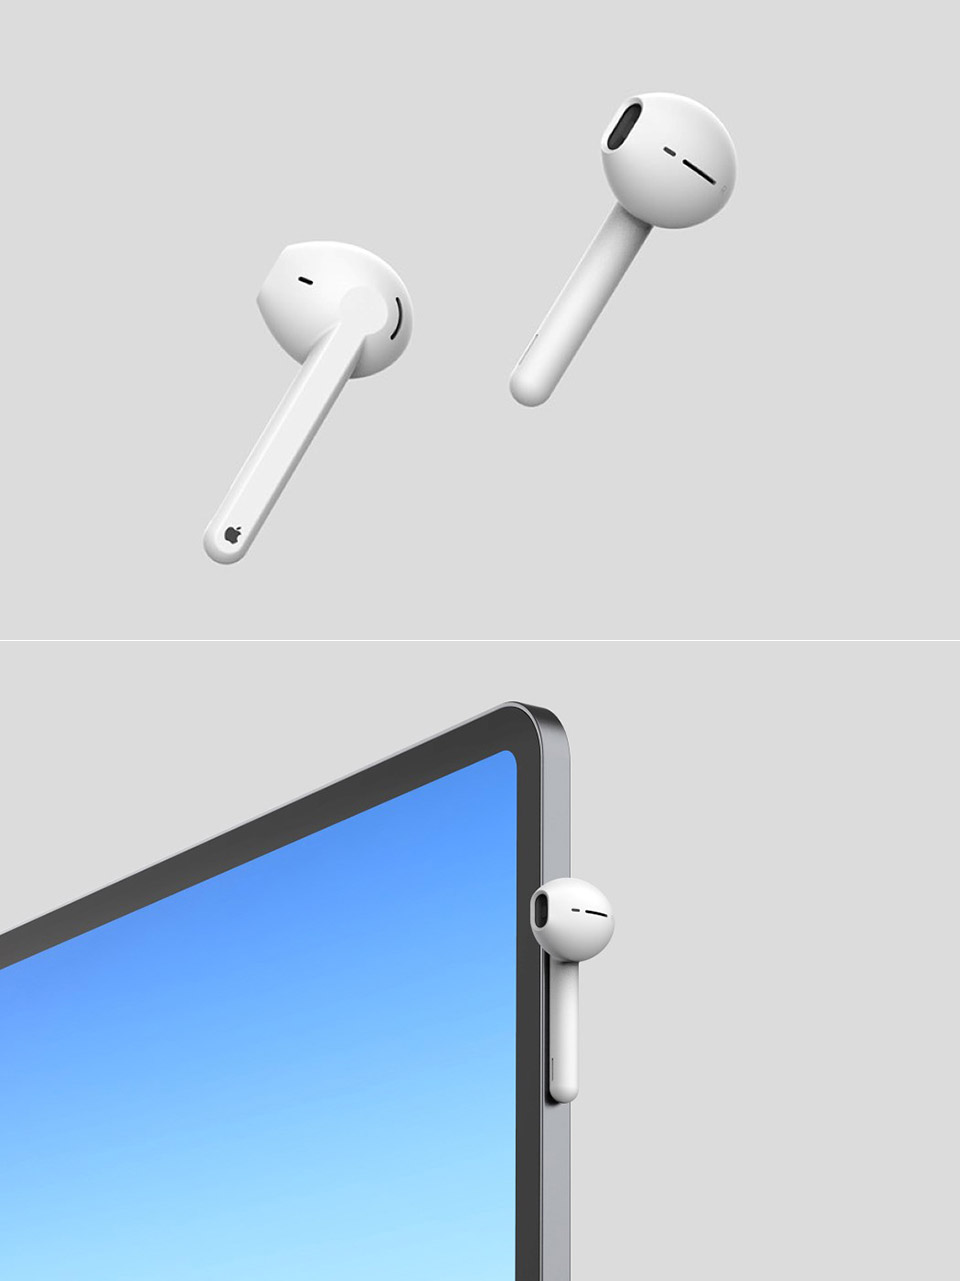 AirPods 3 Concept